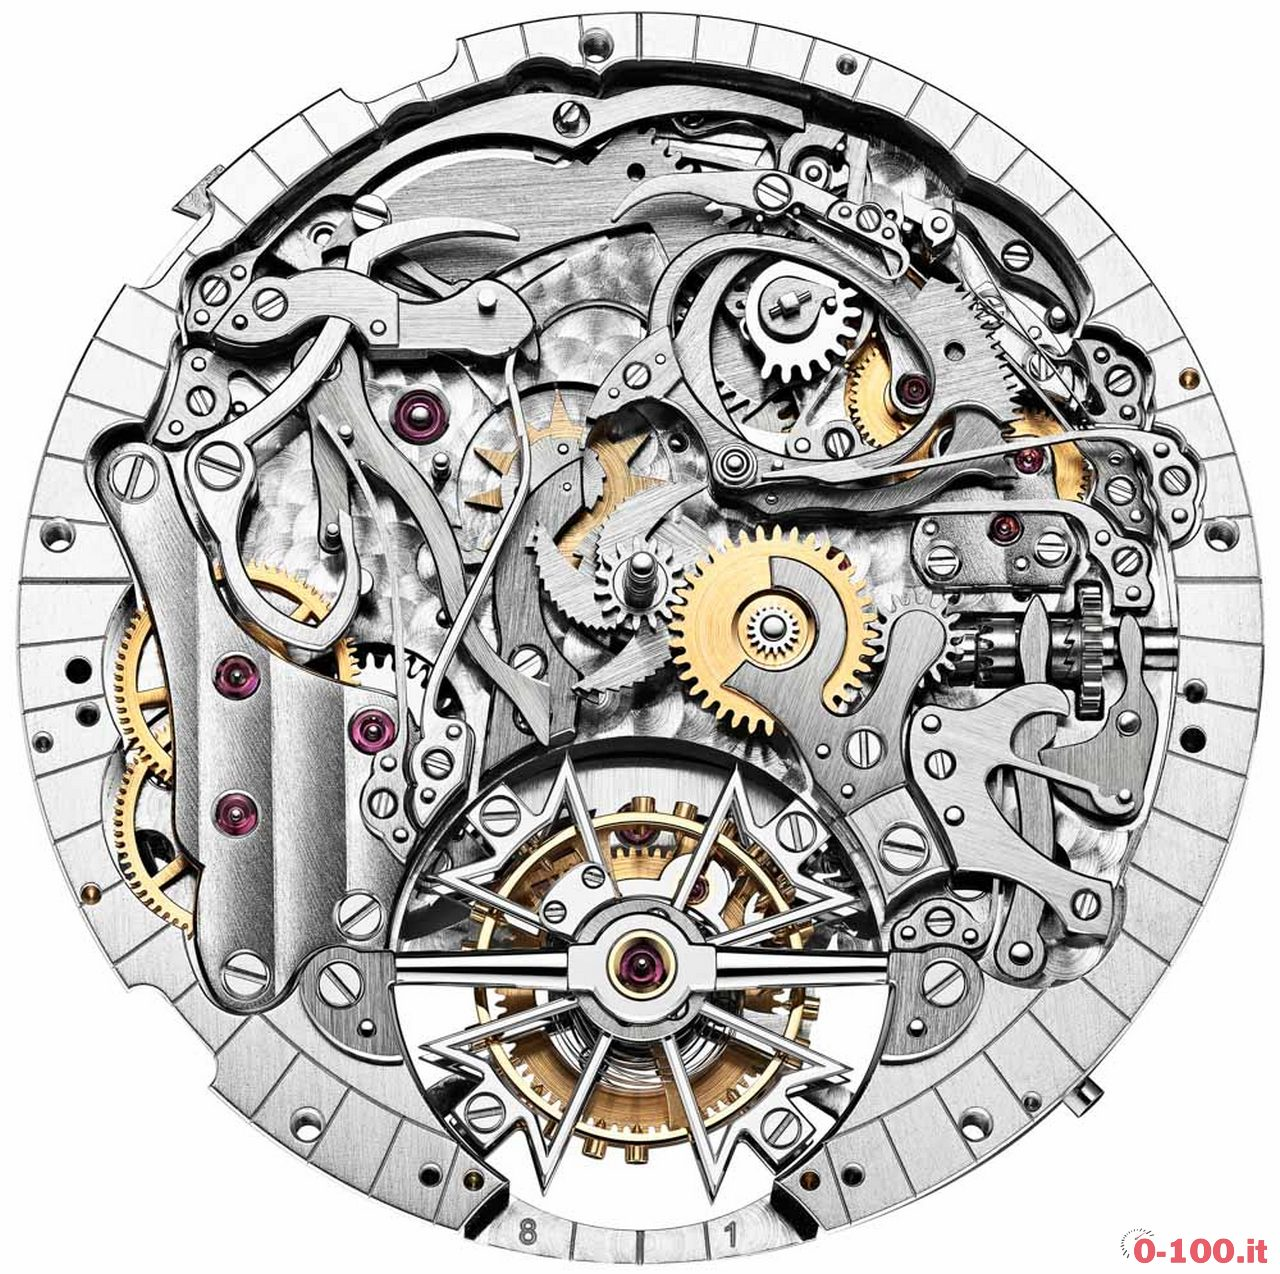 Vacheron-Constantin-Traditionnelle-Minute-Repeater-Tourbillon-aBlogtoWatch-cal2755-r-tr-1